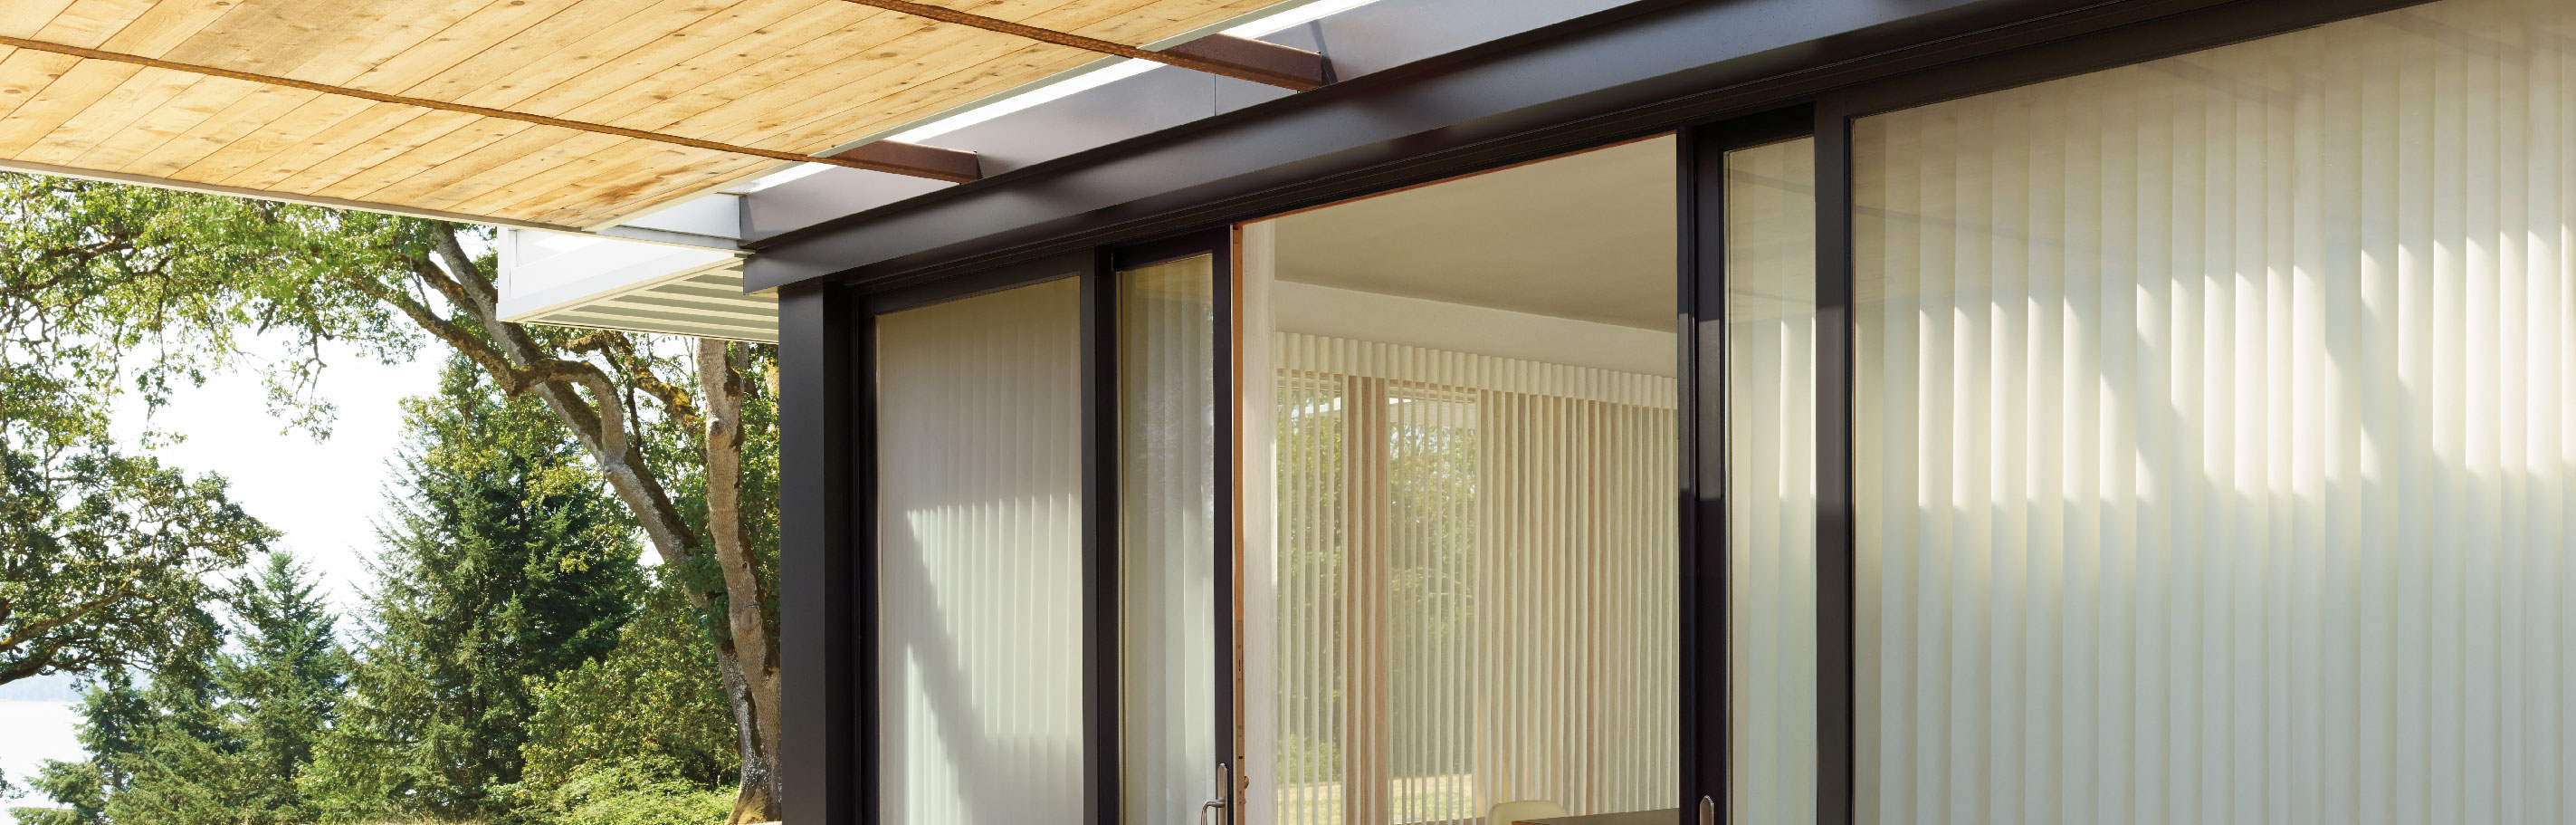 Luxaflex - Products - Softshades and Fabrics - Luminette Privacy Sheers Bottom 2